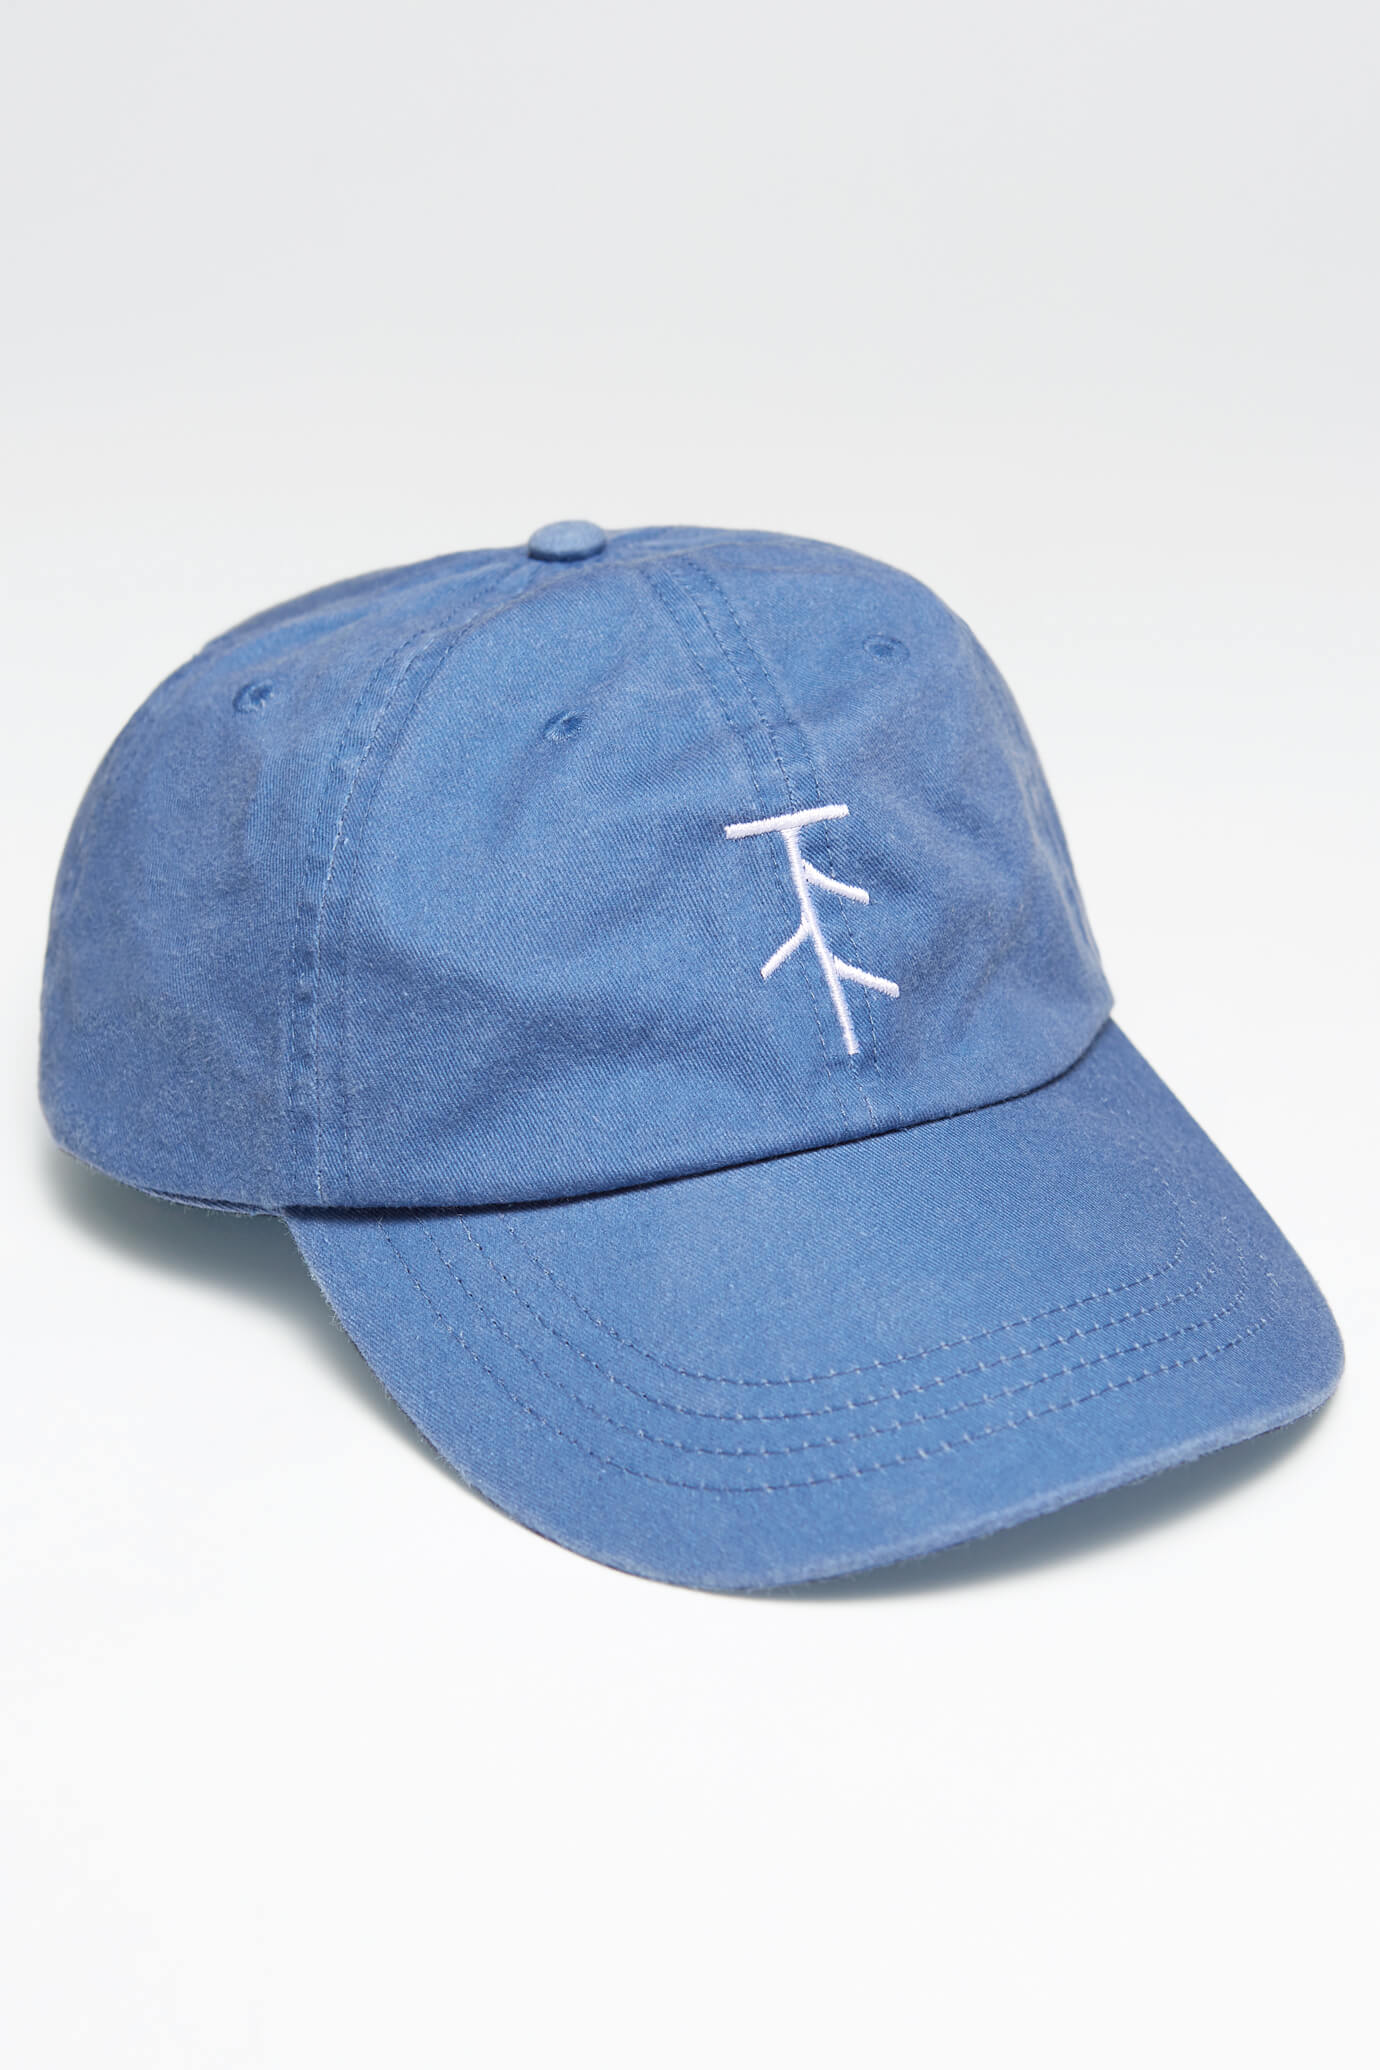 taproot pictures hat in blue rooty